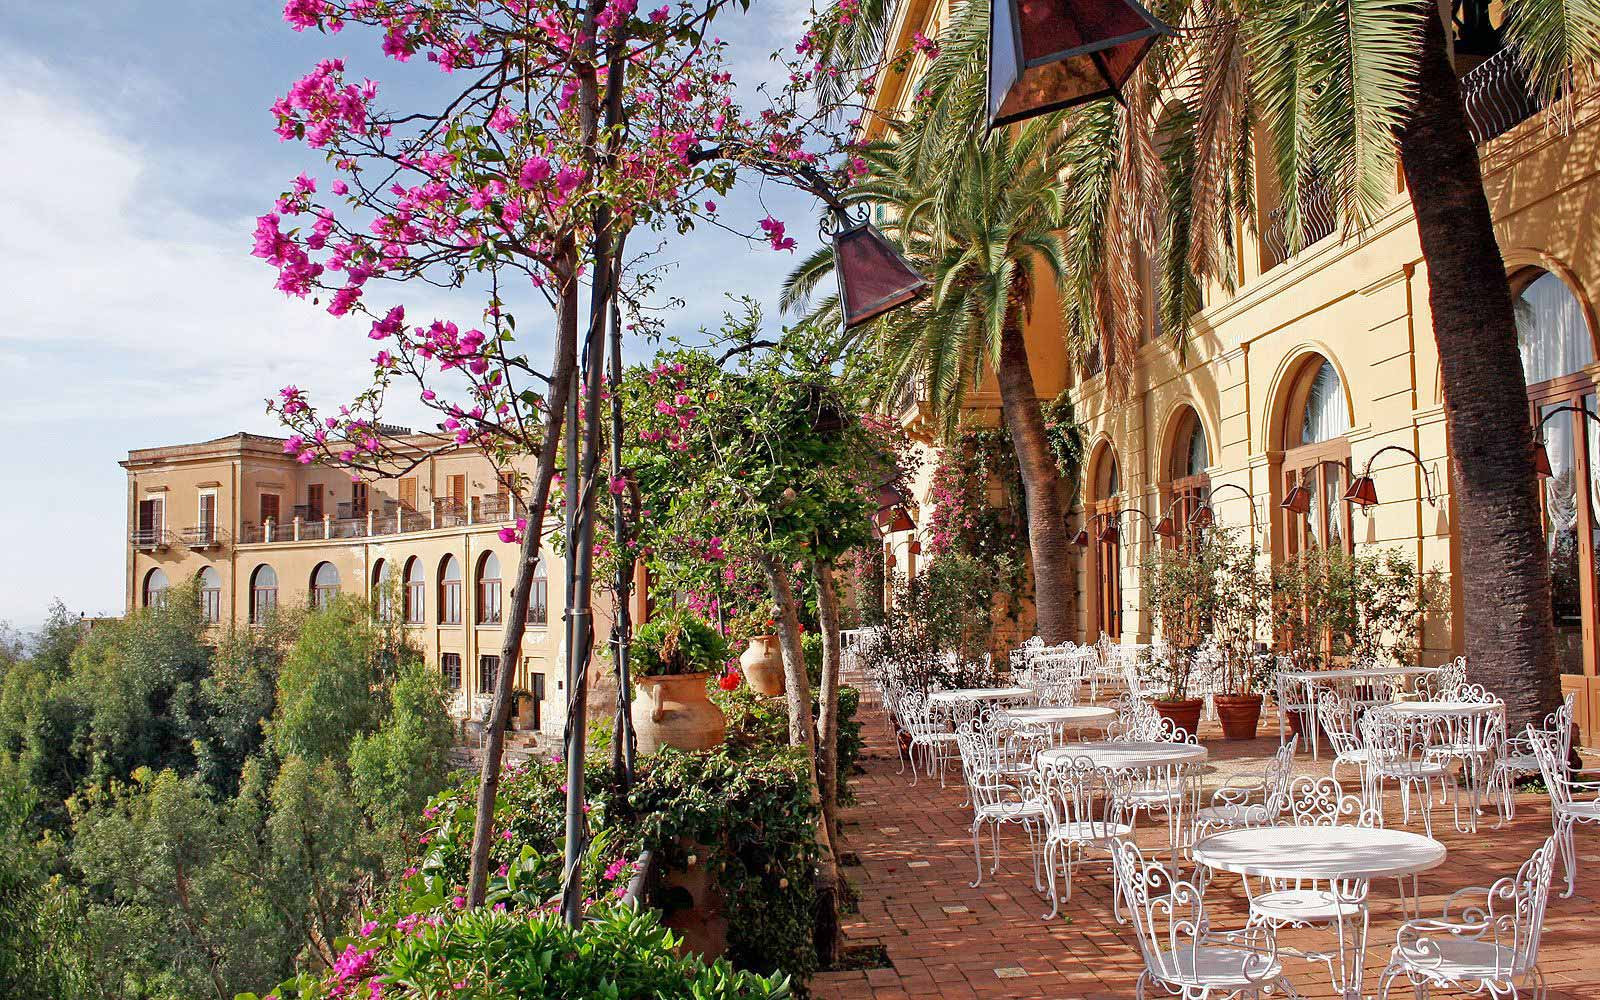 Terrace of the Bouganville Restaurant at the San Domenico Palace Hotel